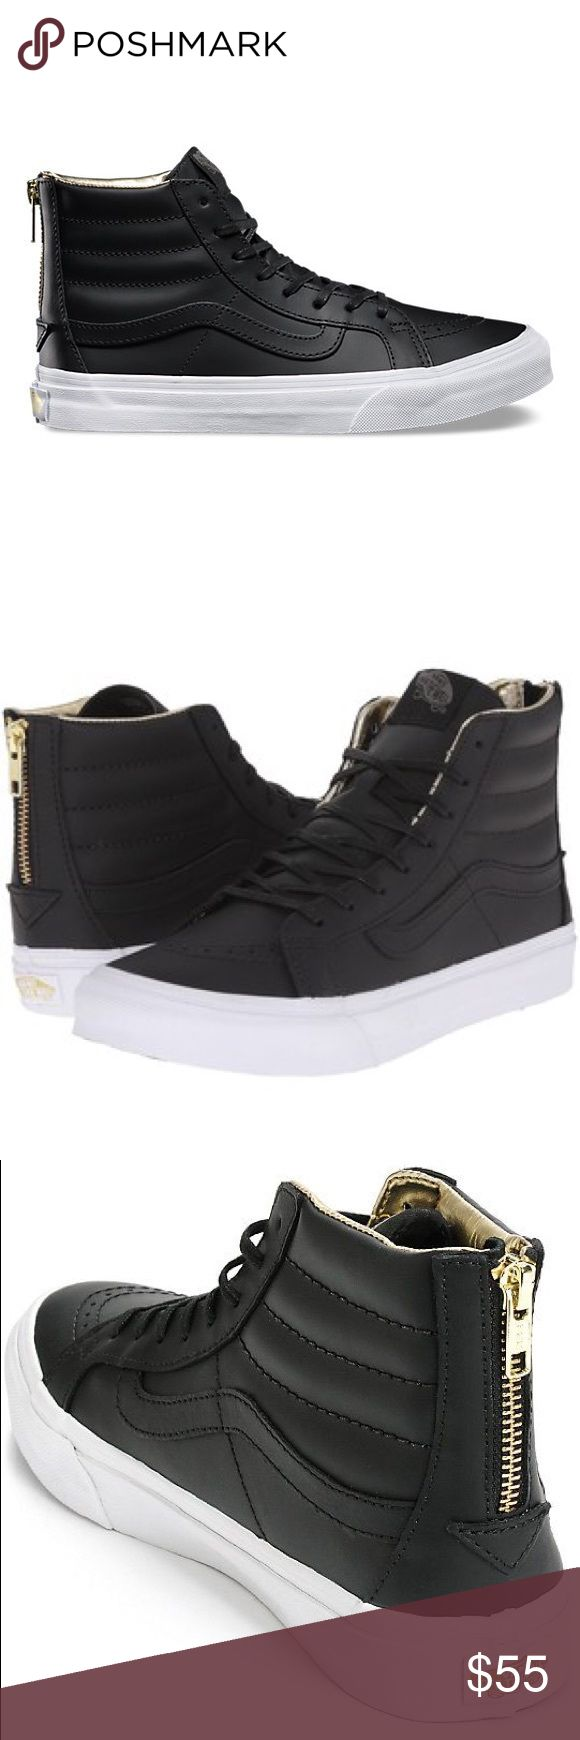 Vans Black/Gold Leather SK8-Hi Slim Zip Classics The Leather Sk8-Hi Slim Zip combines a slimmed down version of the legendary lace-up high top with a zipper entry at the heel, premium leather uppers, signature waffle rubber outsoles, and padded collars for support and flexibility. The shoes pictures here are the exact pair for sale. Women size 9 or men's 7.5 Vans Shoes Sneakers